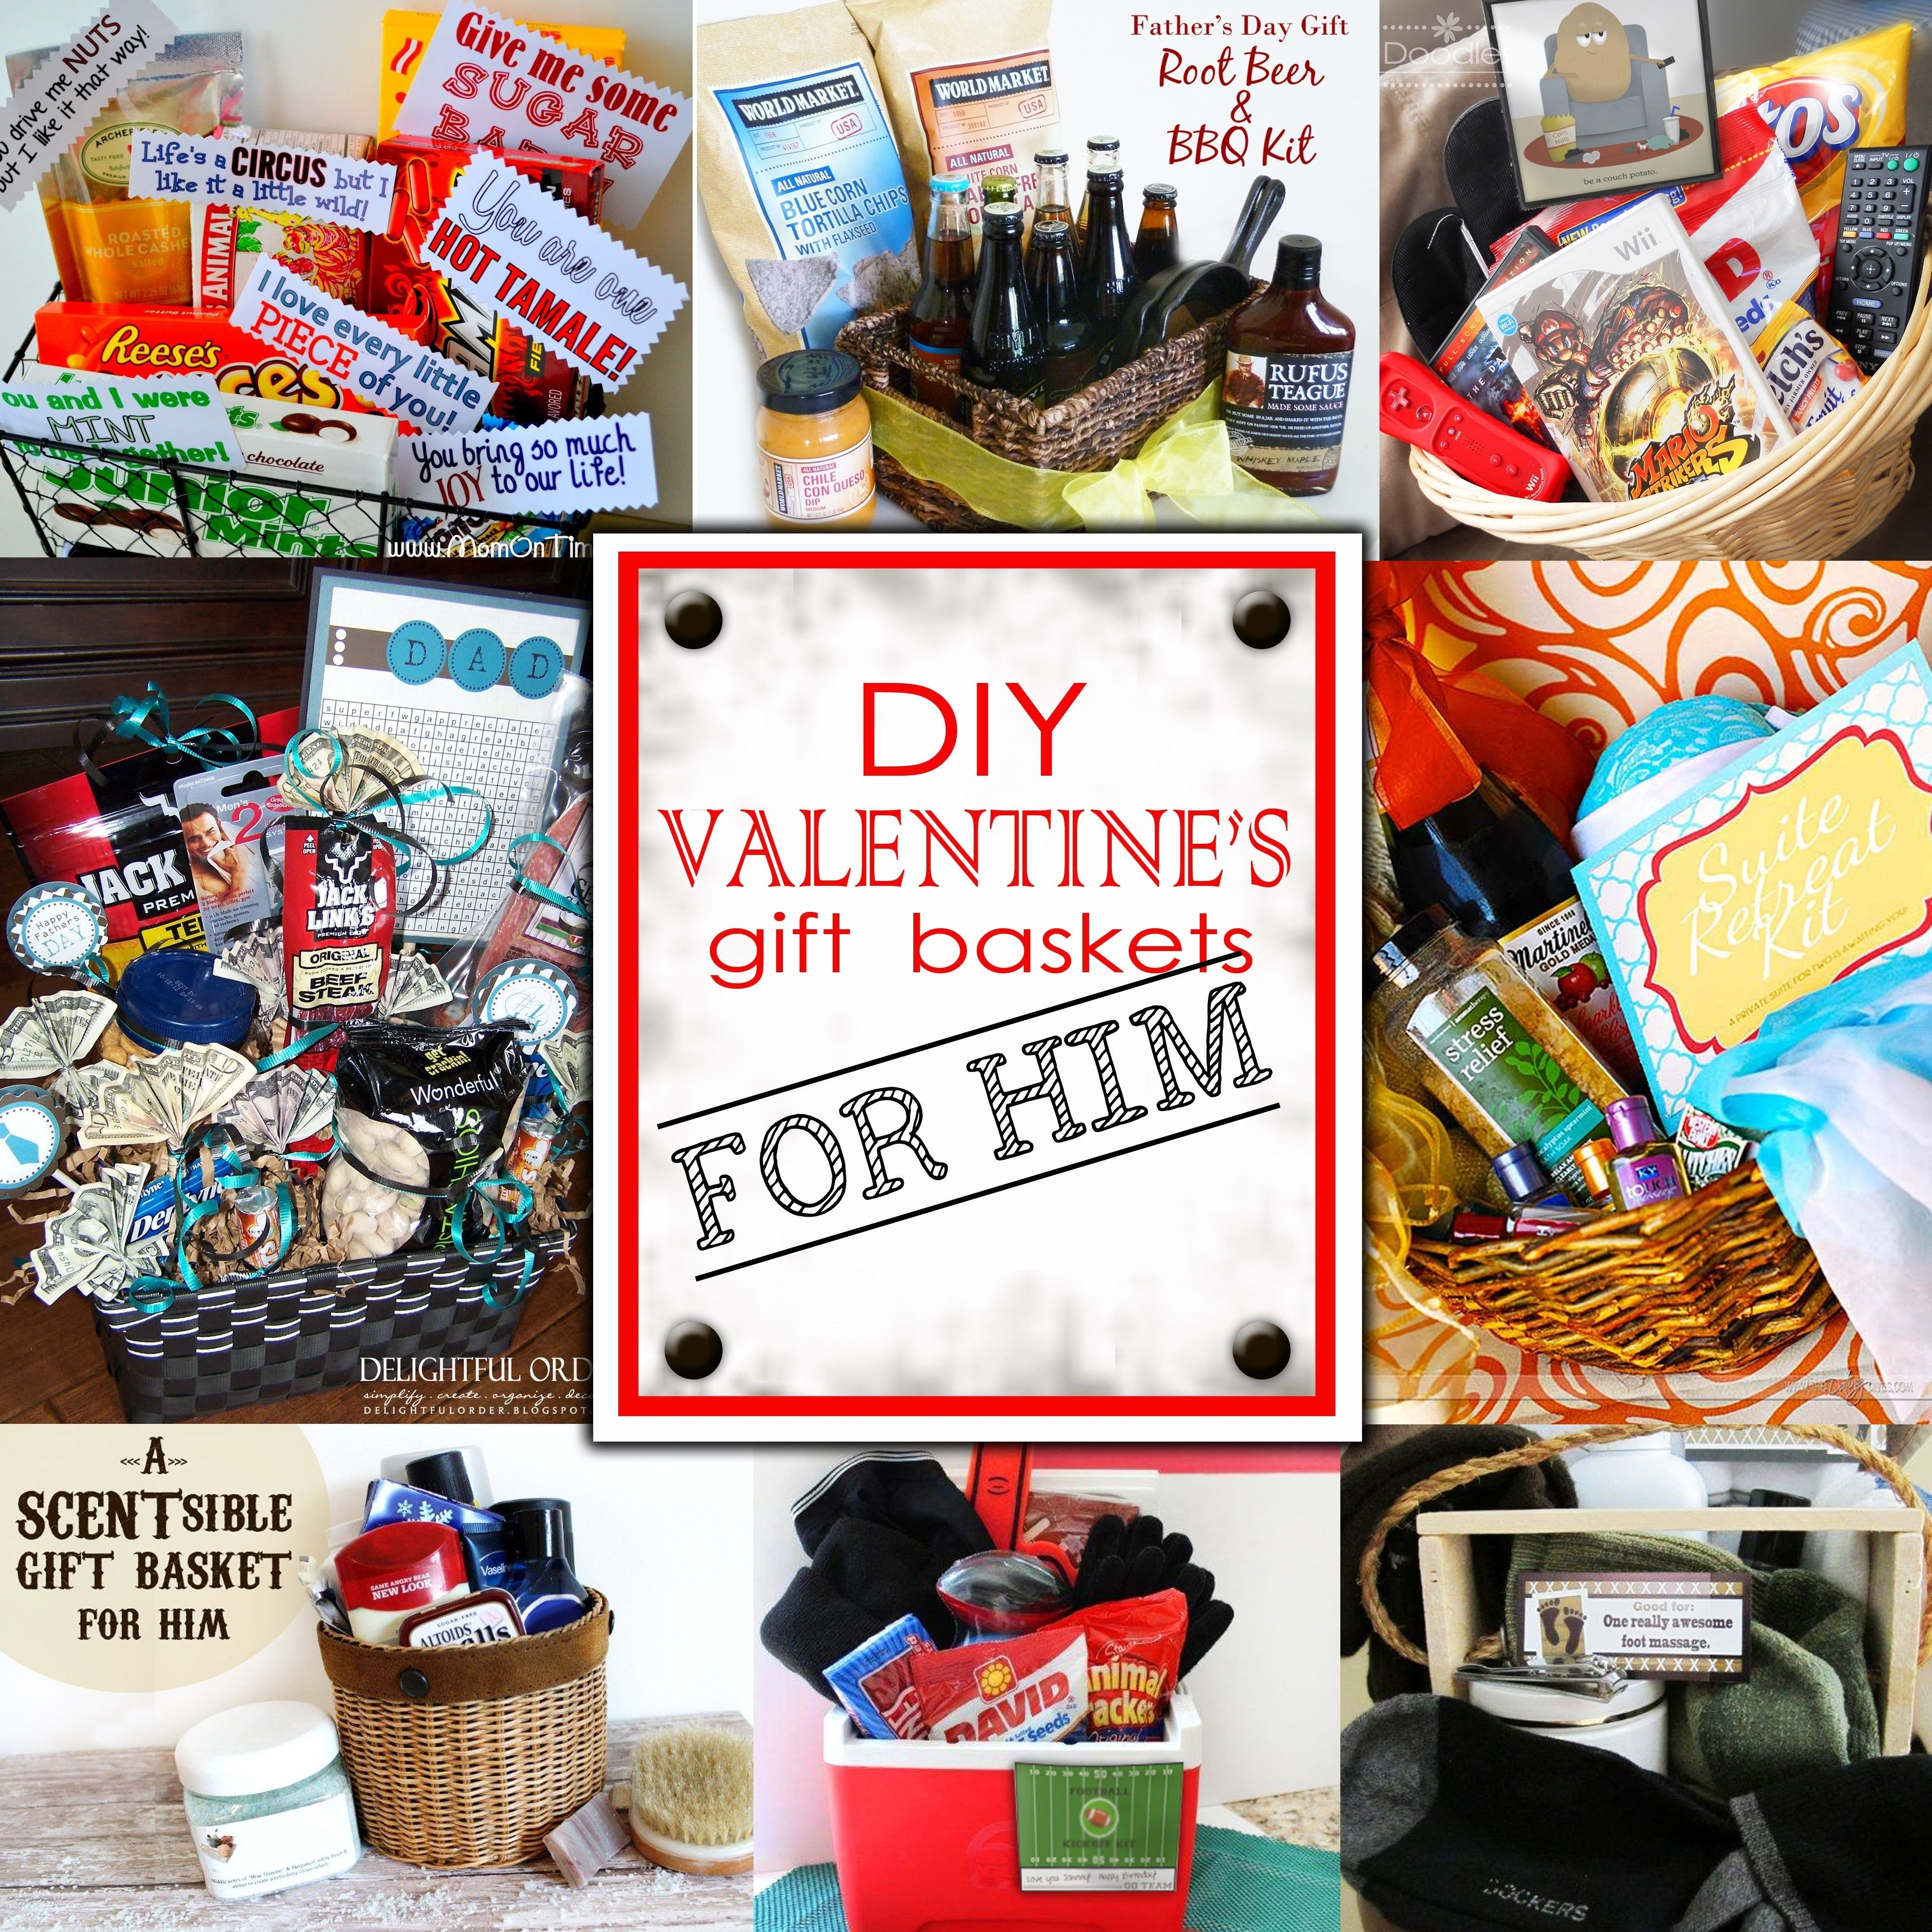 10 Nice Valentines Day Ideas For Men diy valentines day gift baskets for him jeremiahs gifts 1 2021